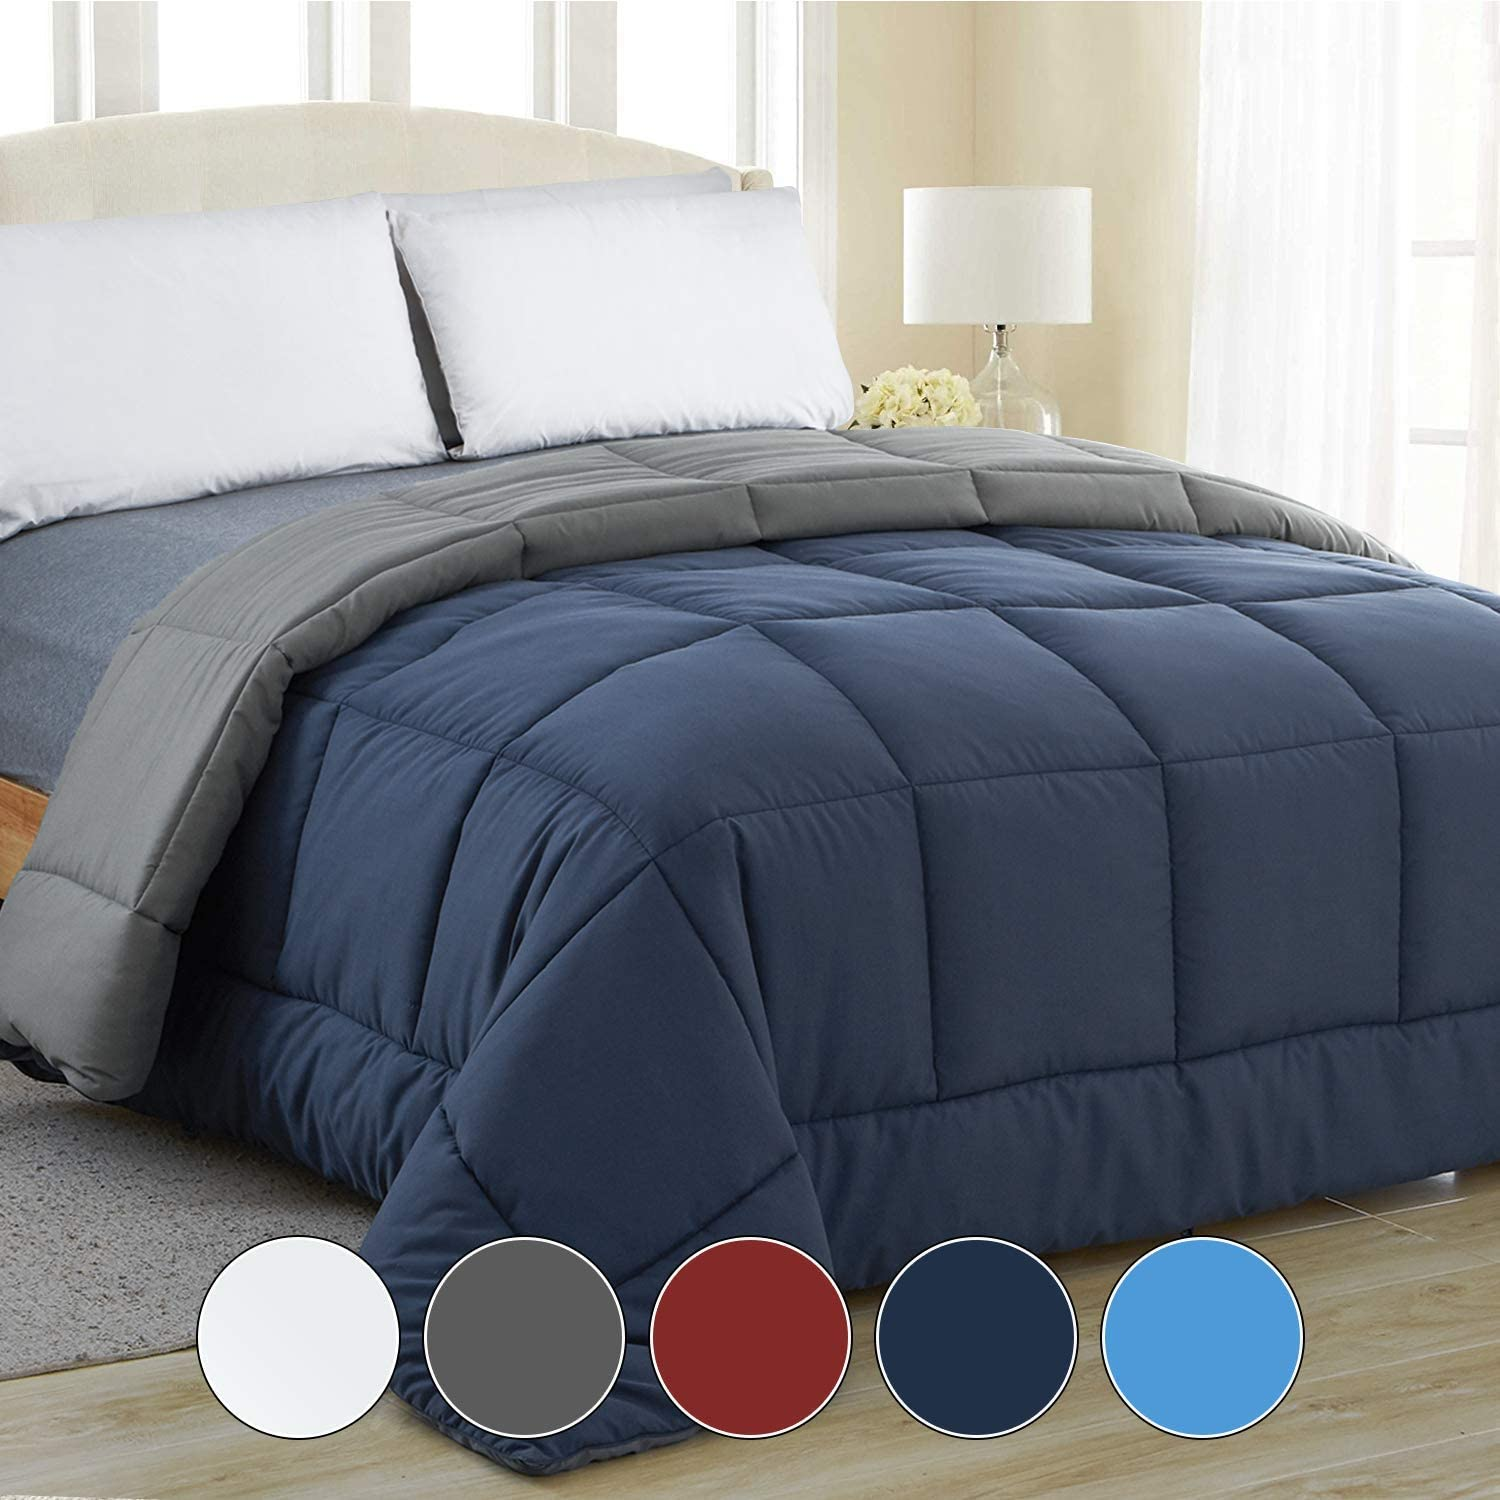 Equinox All-Season Navy Blue/Charcoal Grey Quilted Comforter - Goose Down Alternative - Reversible Duvet Insert Set - Machine Washable - Plush Microfiber Fill (350 GSM) (King 102 x 90 Inches)